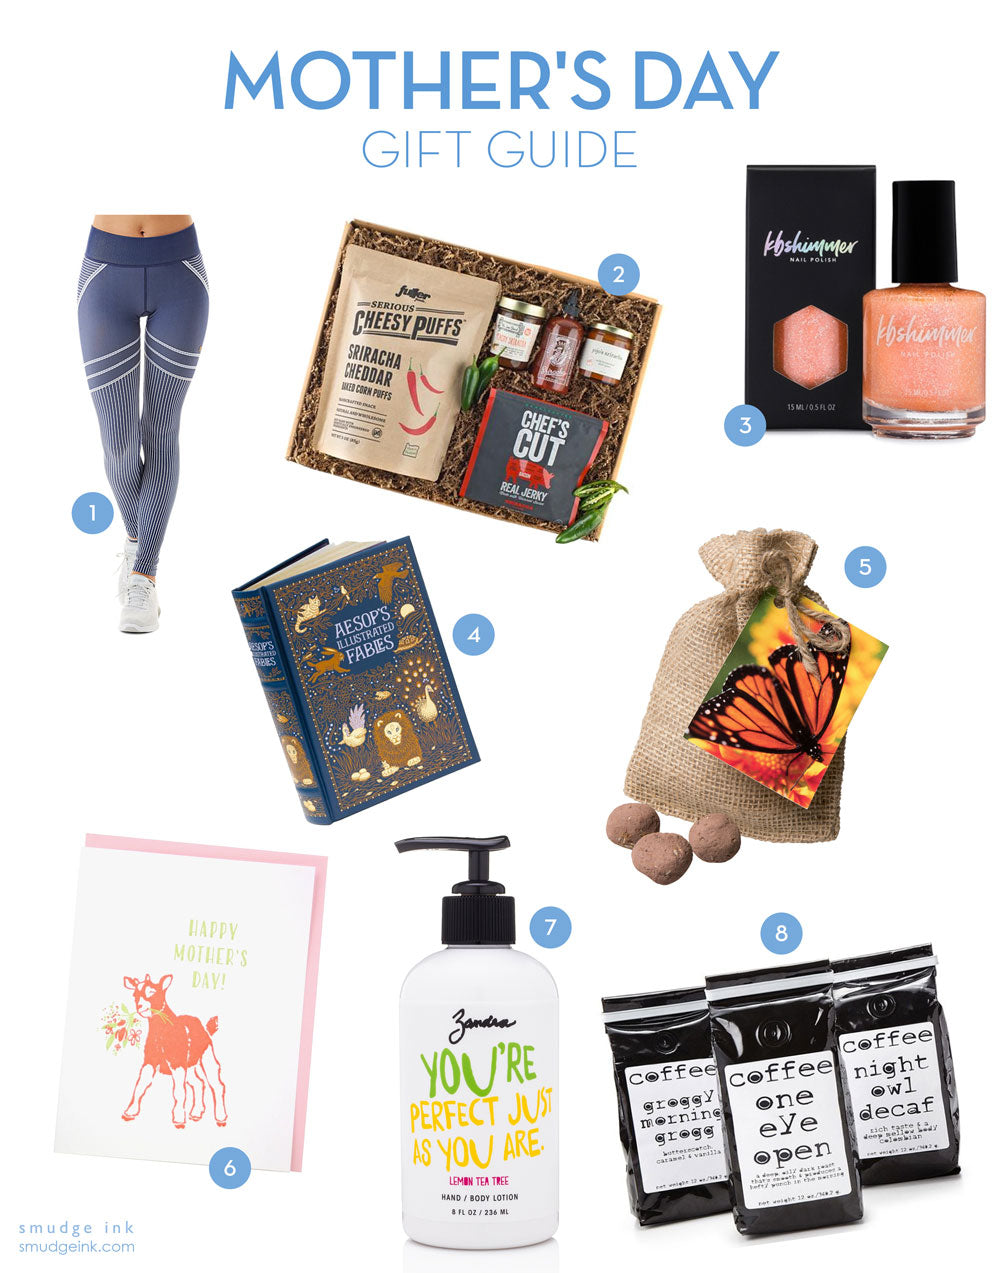 2018 Mother's Day Gift Guide by Smudge Ink